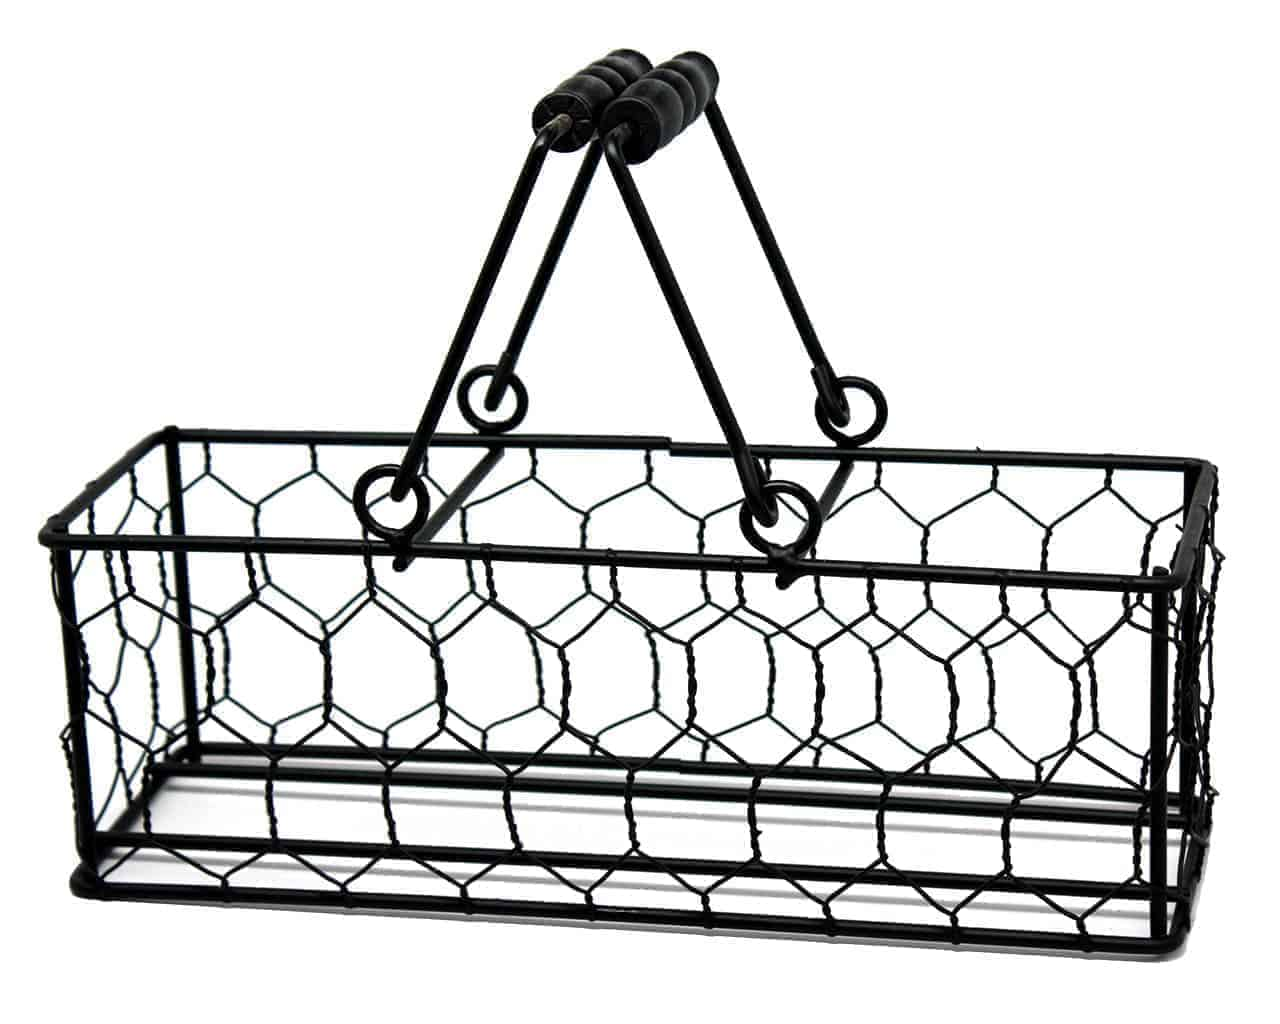 Chicken Wire Caddy for 3 Pint Mason Jars